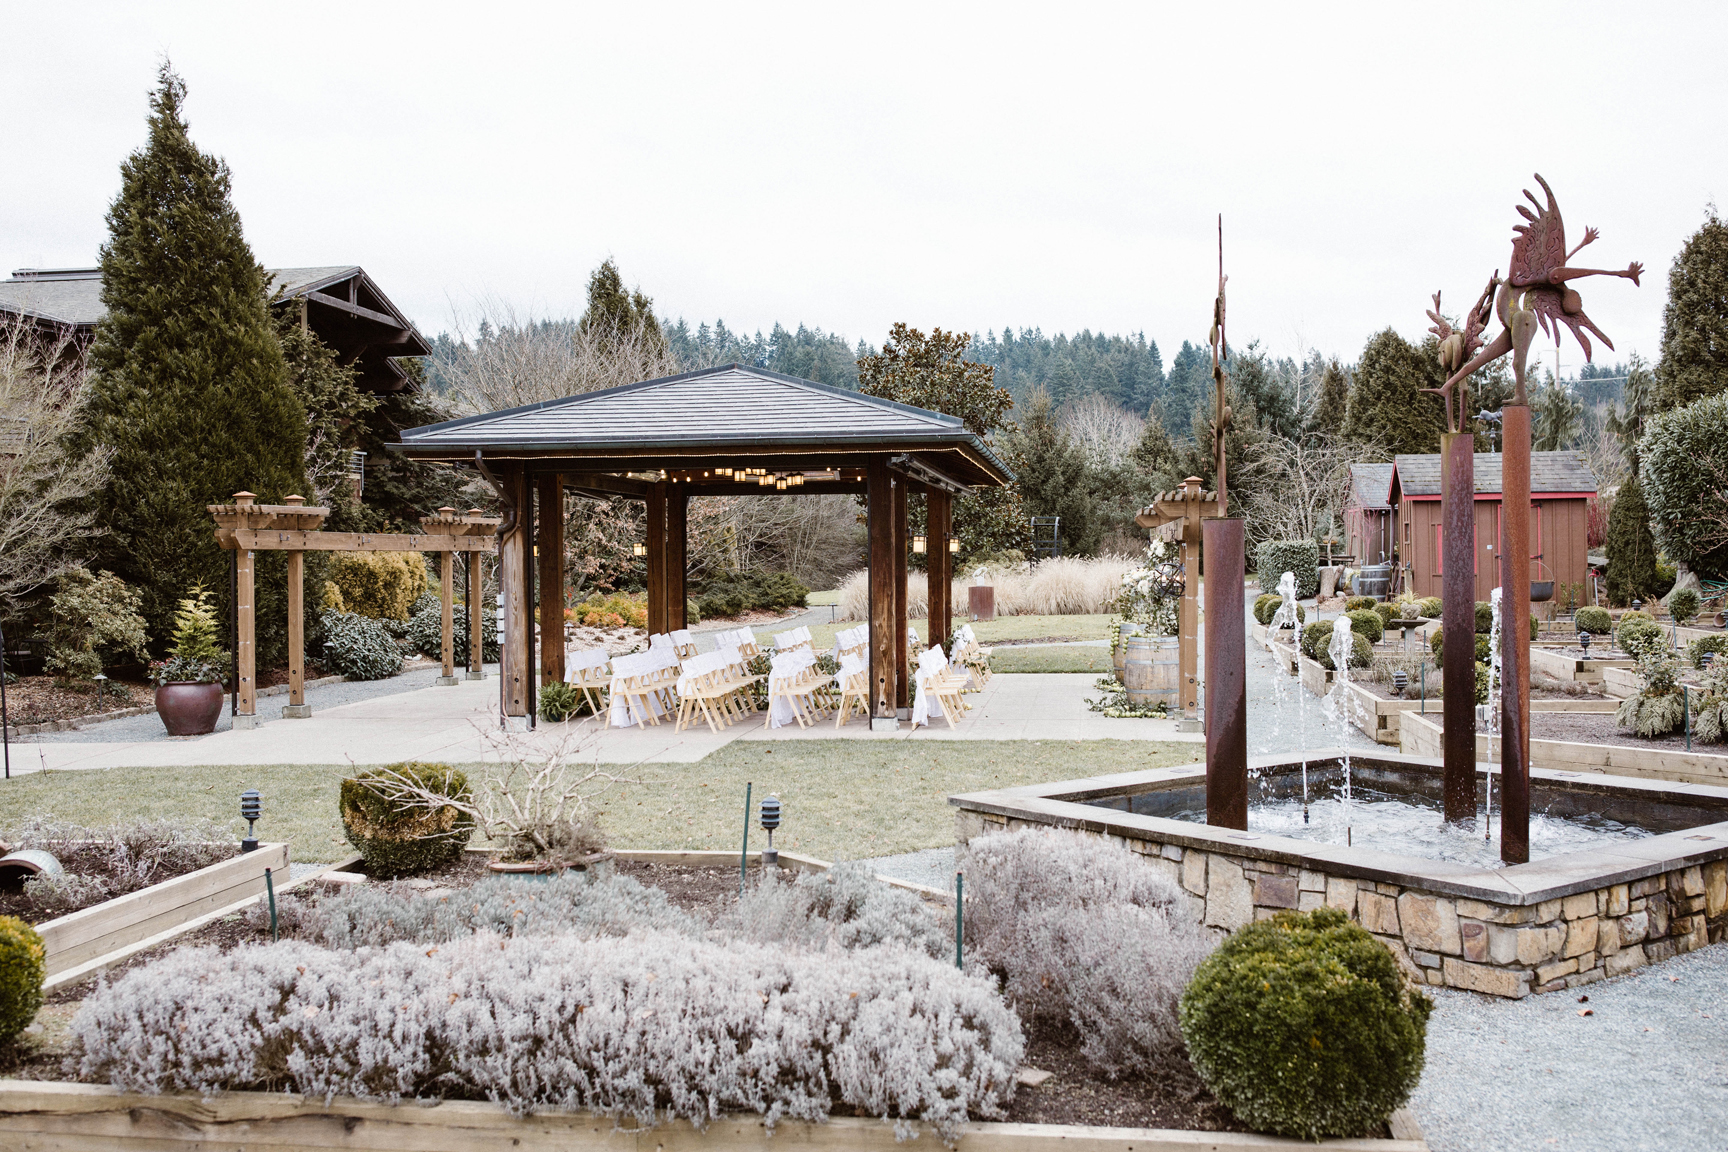 Willows+Lodge_Woodinville_2017_Weddings+In+Woodinville210.jpg